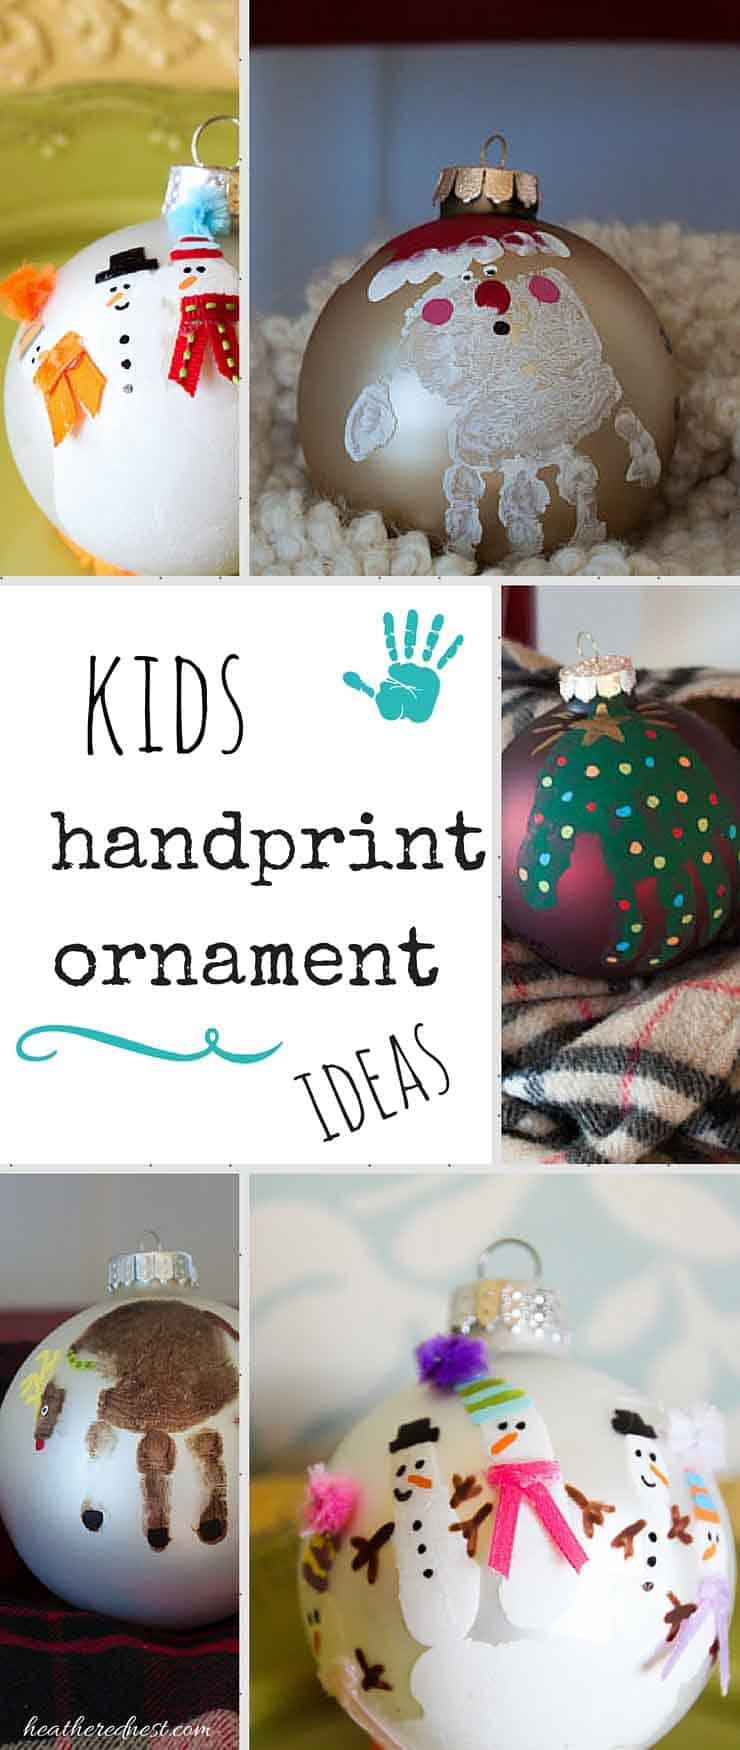 DIY Christmas Ornaments With Pictures  Handprint Ornament and DIY Christmas Ornament Ideas